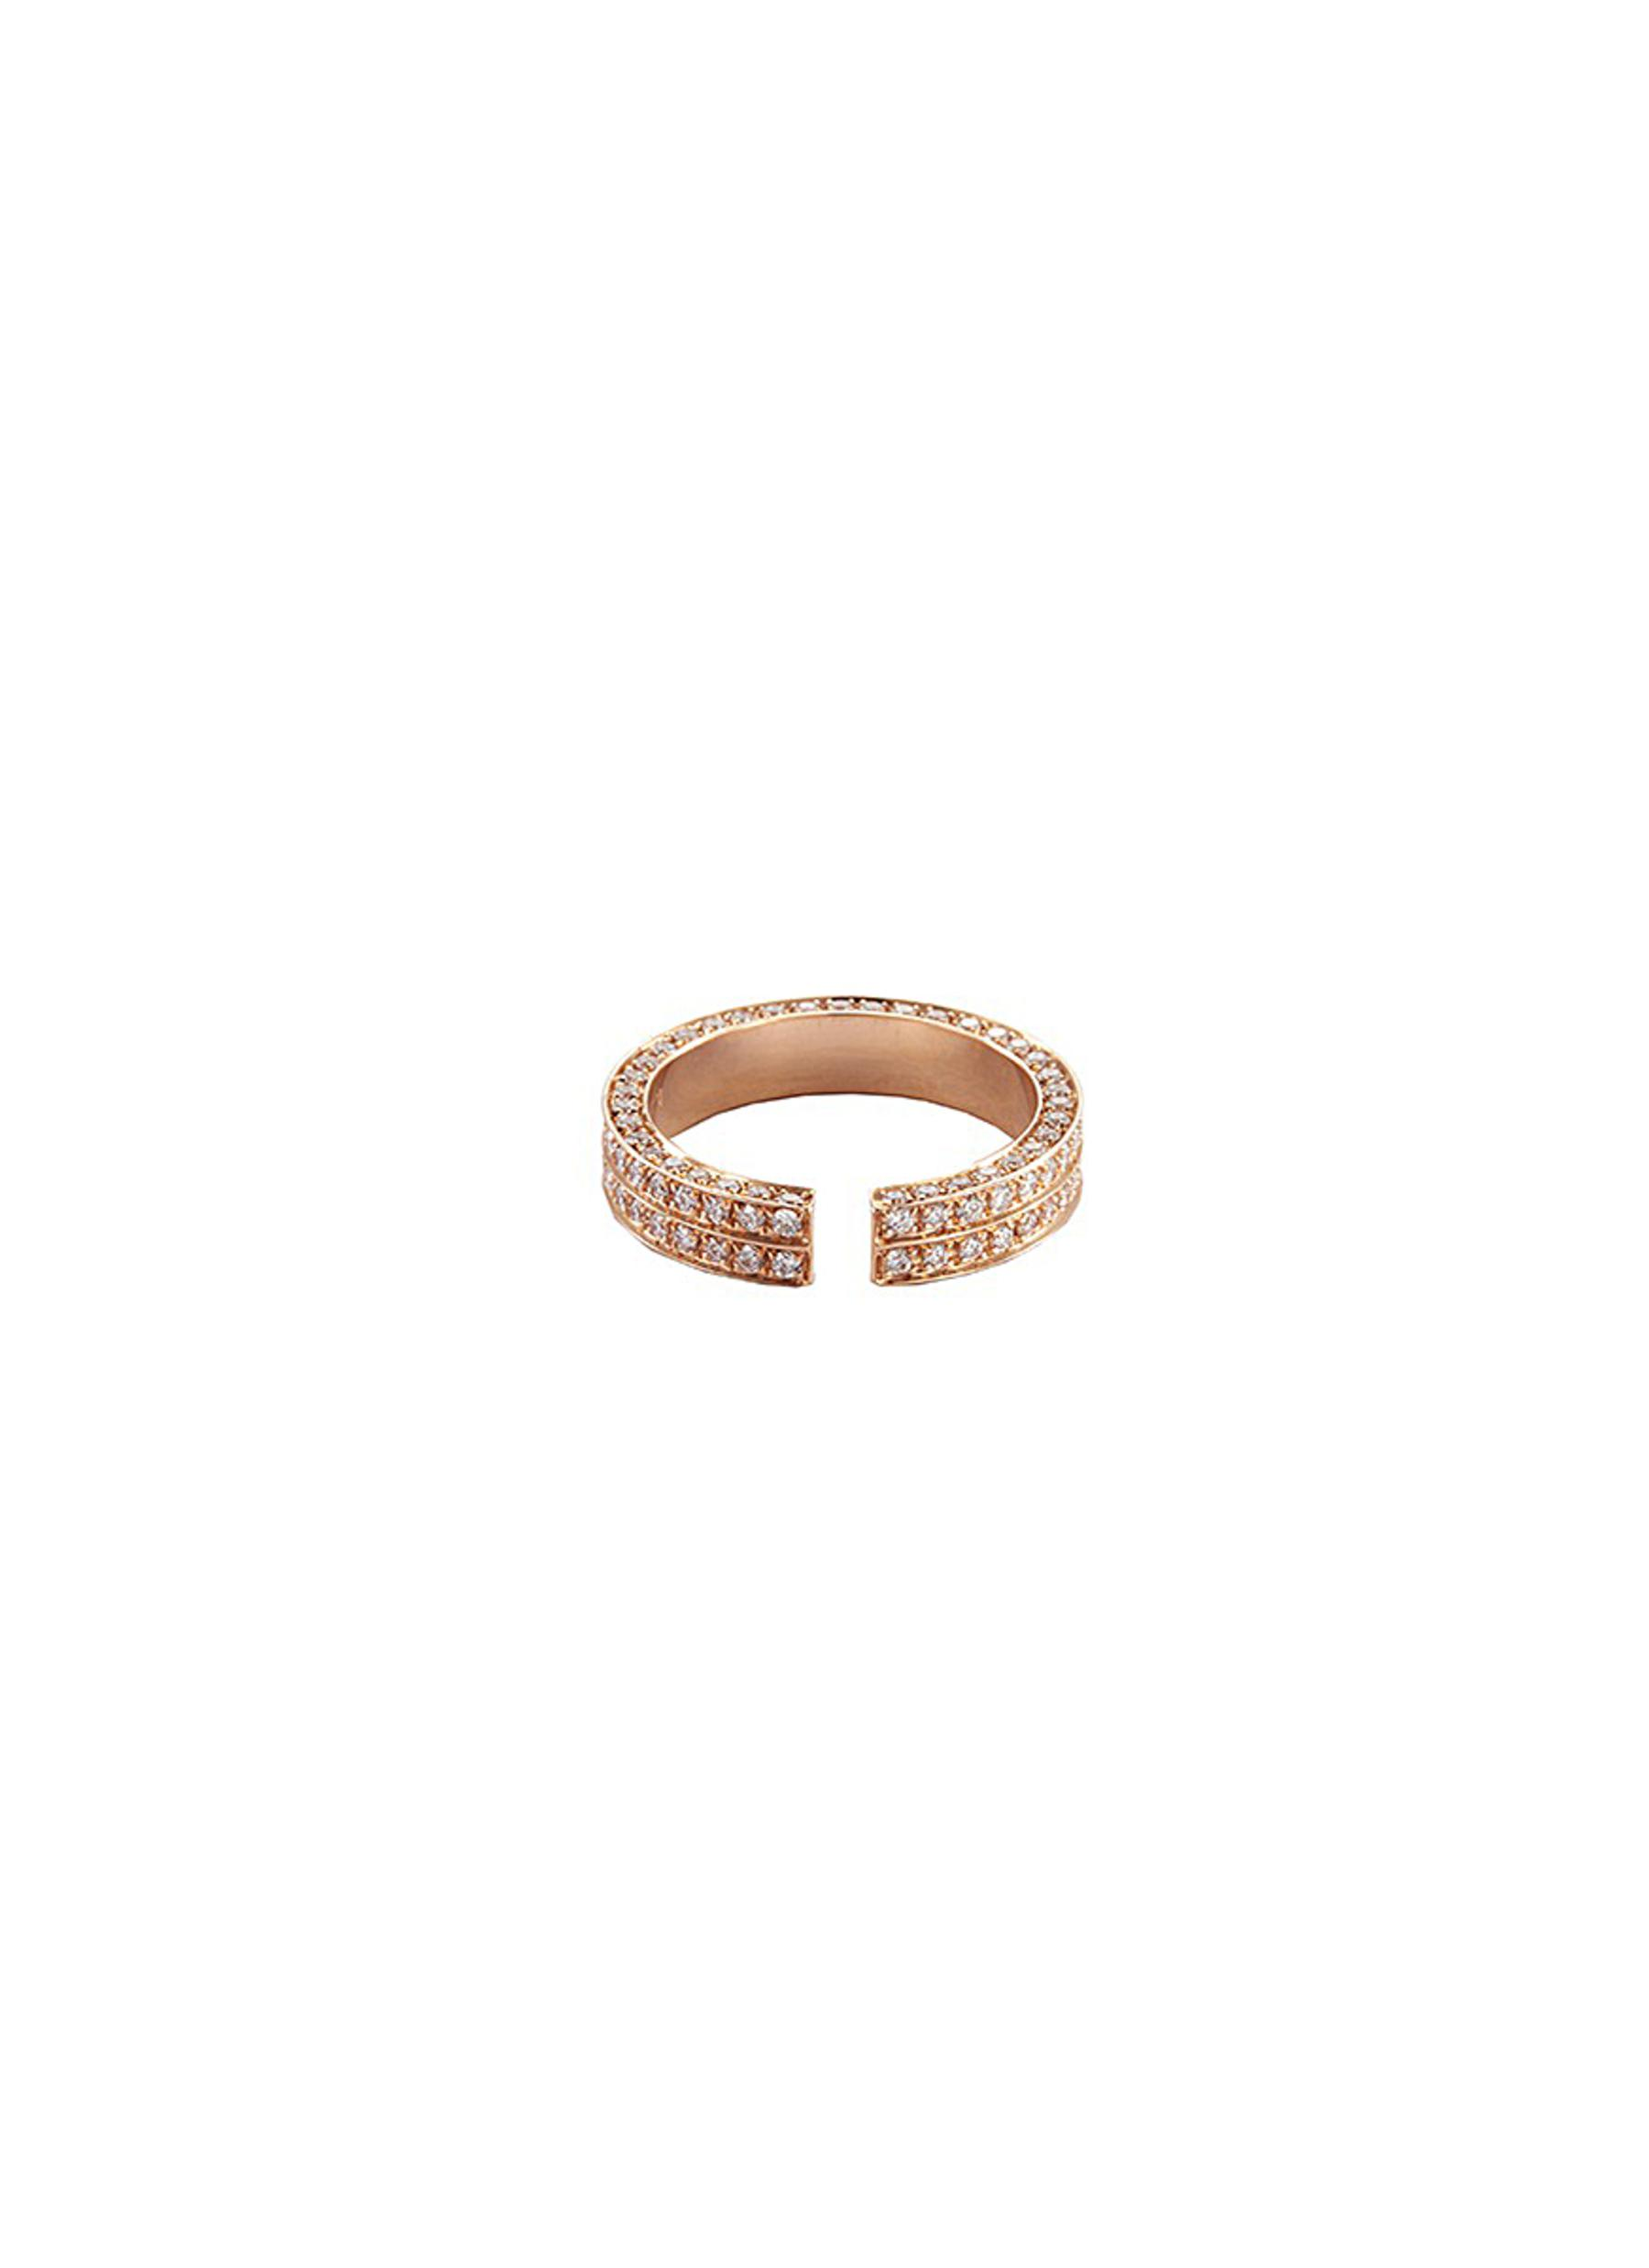 DIAMOND 18K ROSE GOLD OPEN RING